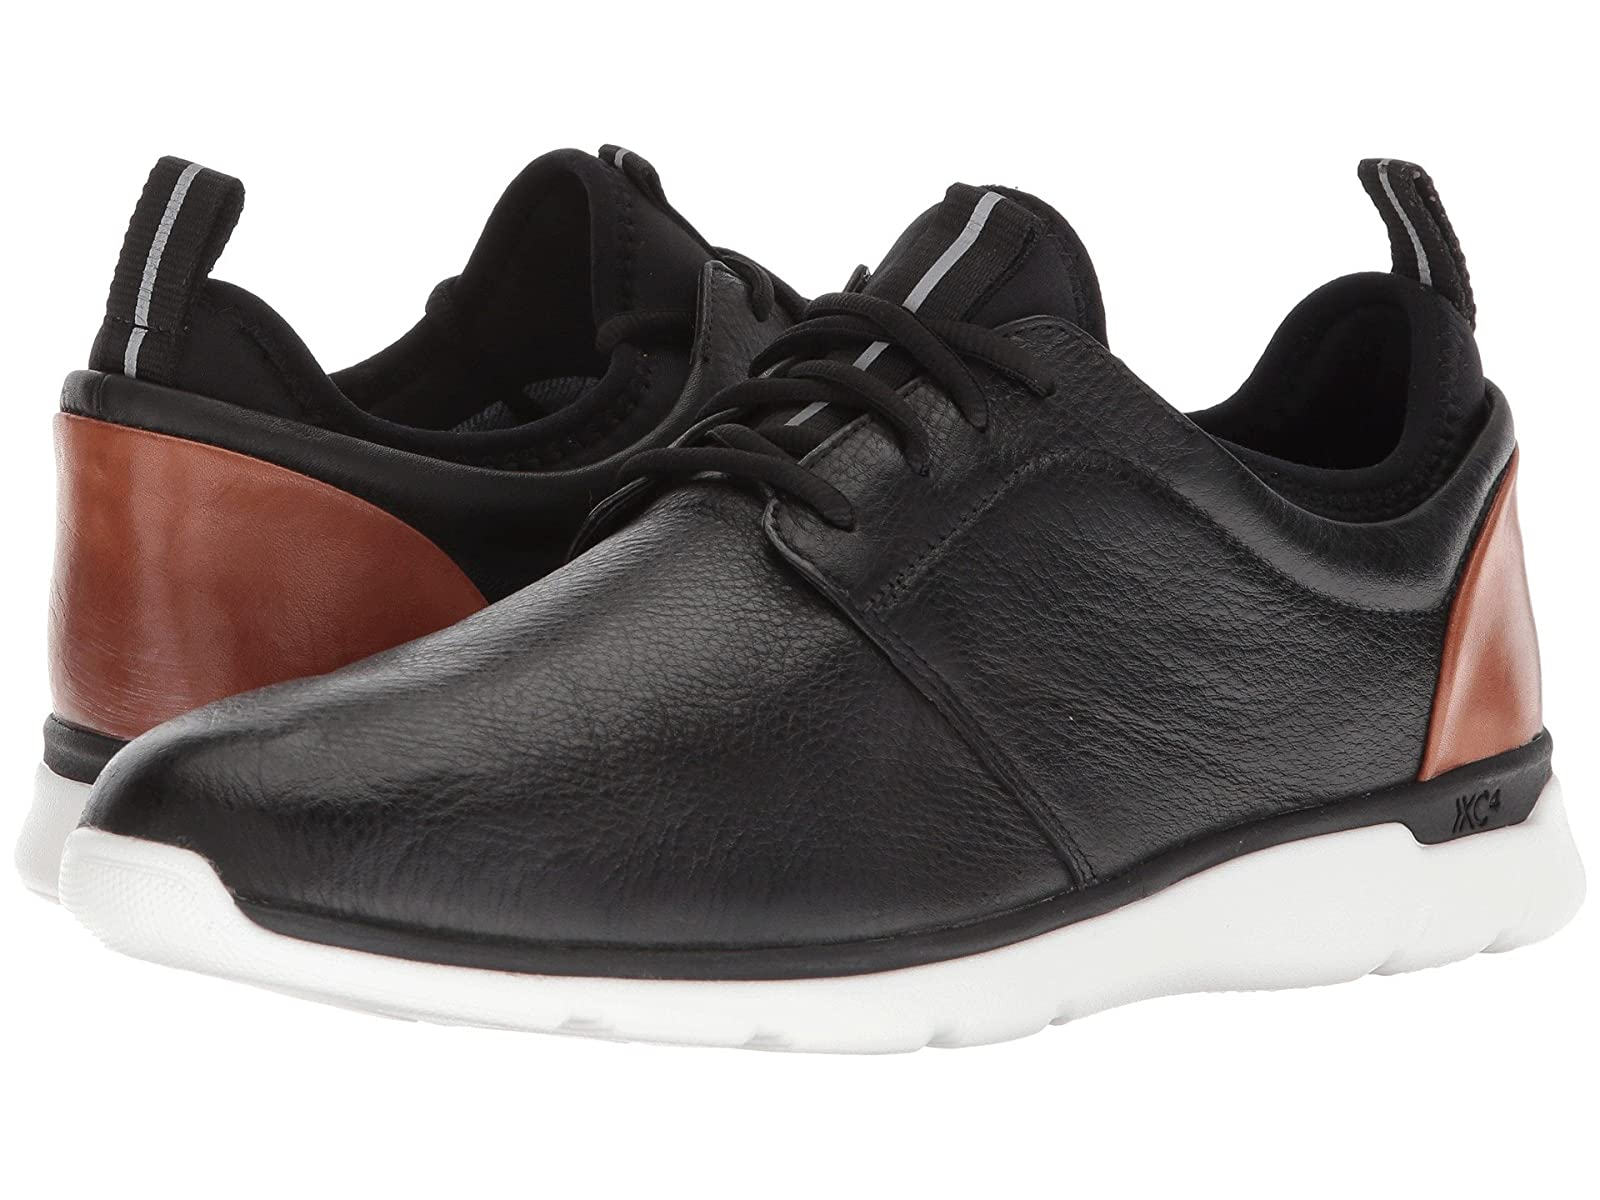 Johnston & Murphy Waterproof Prentiss XC4(R) Casual Dress Plain Toe SneakerAtmospheric grades have affordable shoes